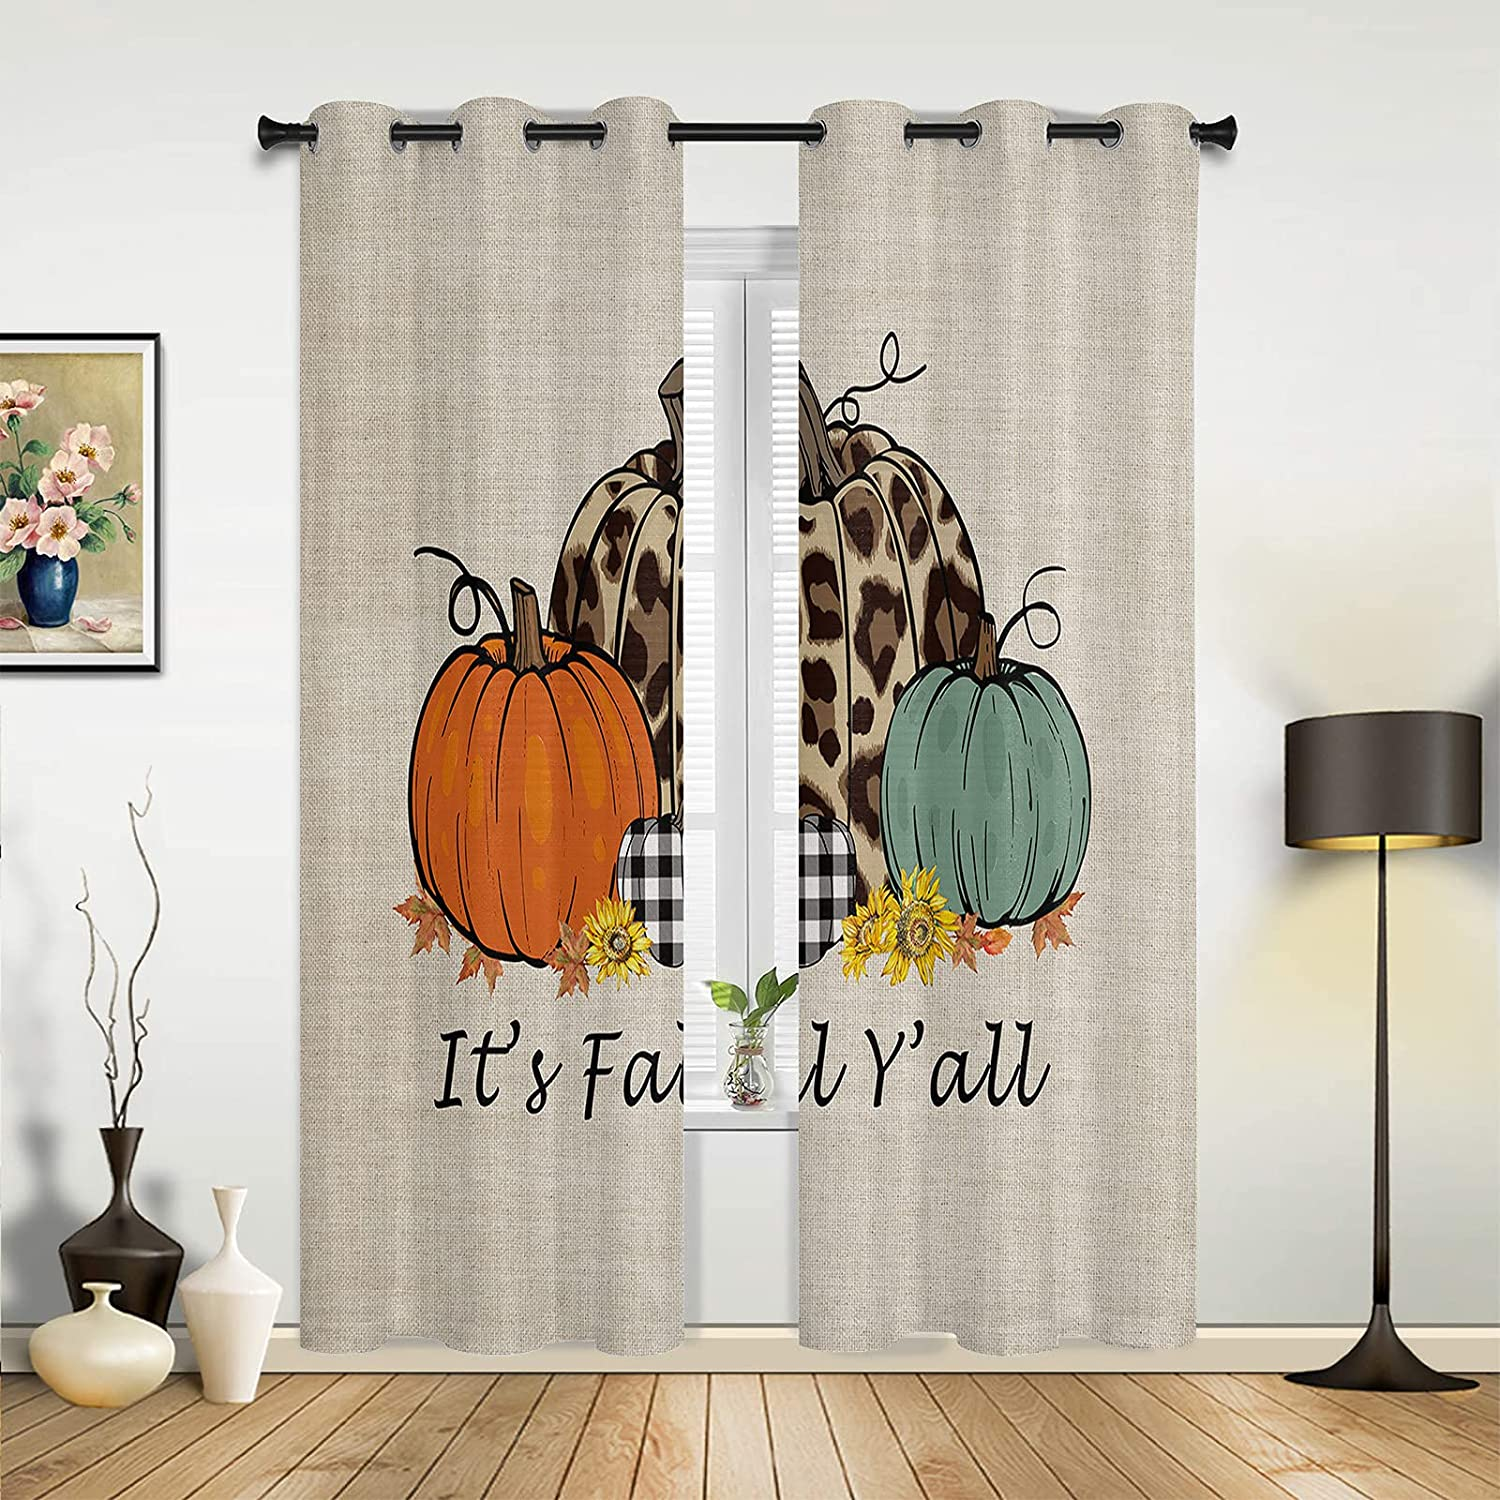 2 Panels Max 85% OFF Kitchen Curtains Window Treatment Thanksg Inch 52 54 Indianapolis Mall x